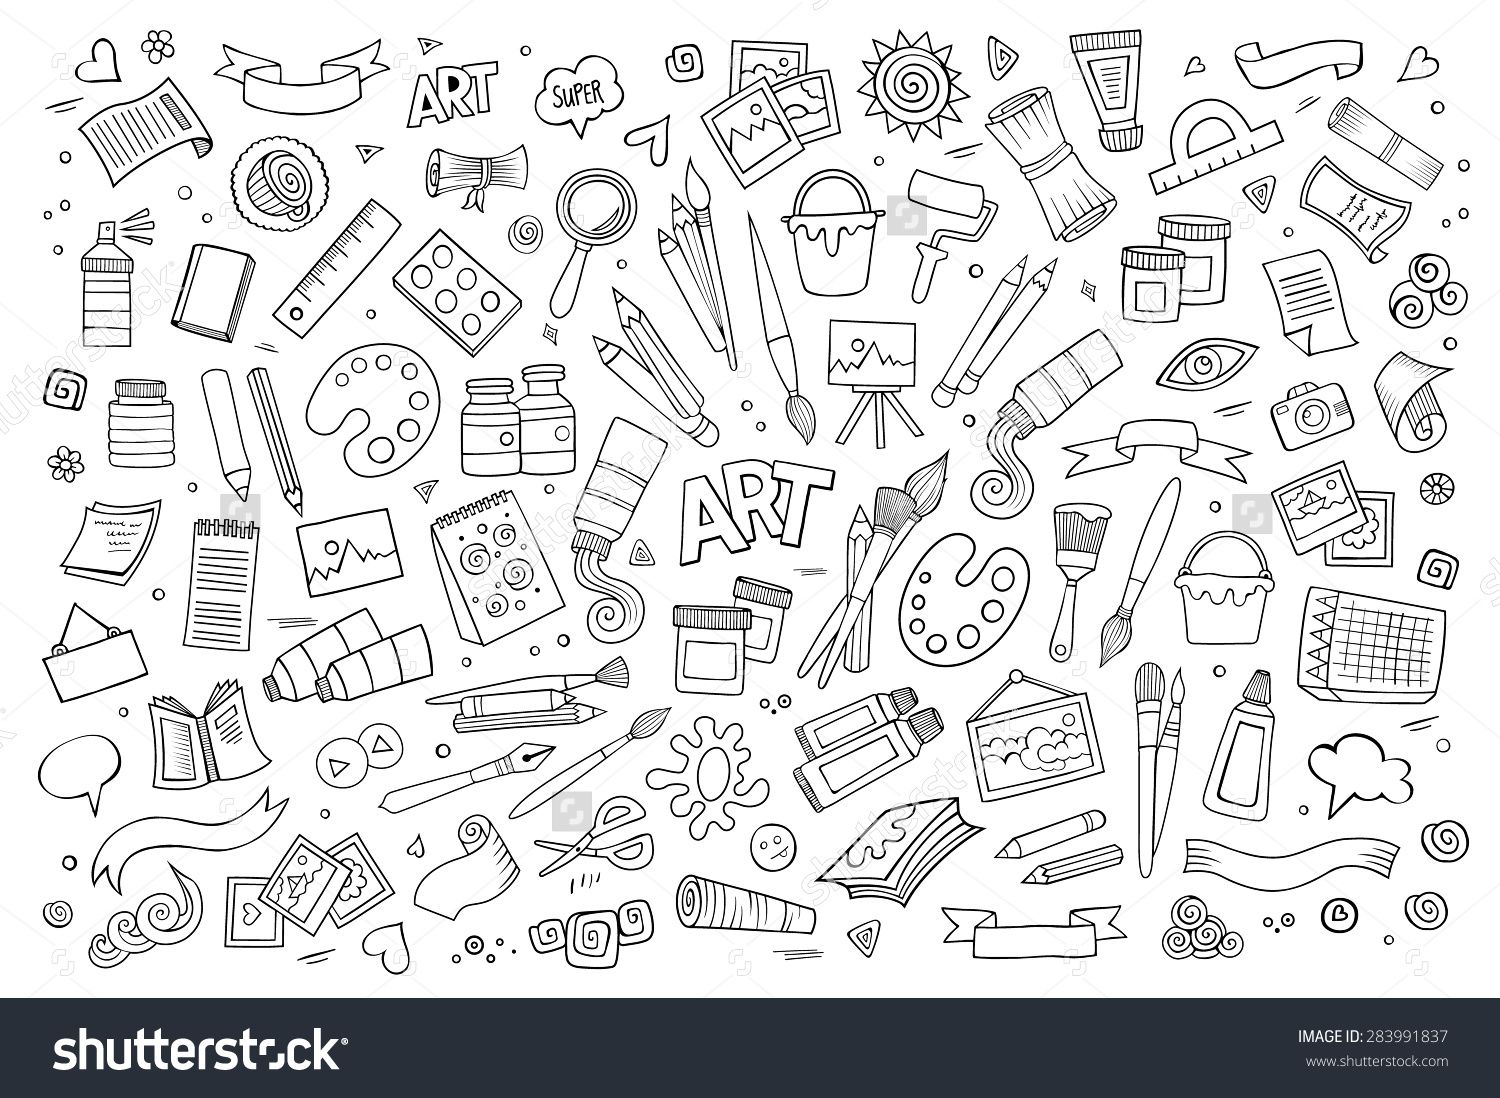 Art And Craft Hand Drawn Vector Symbols And Objects